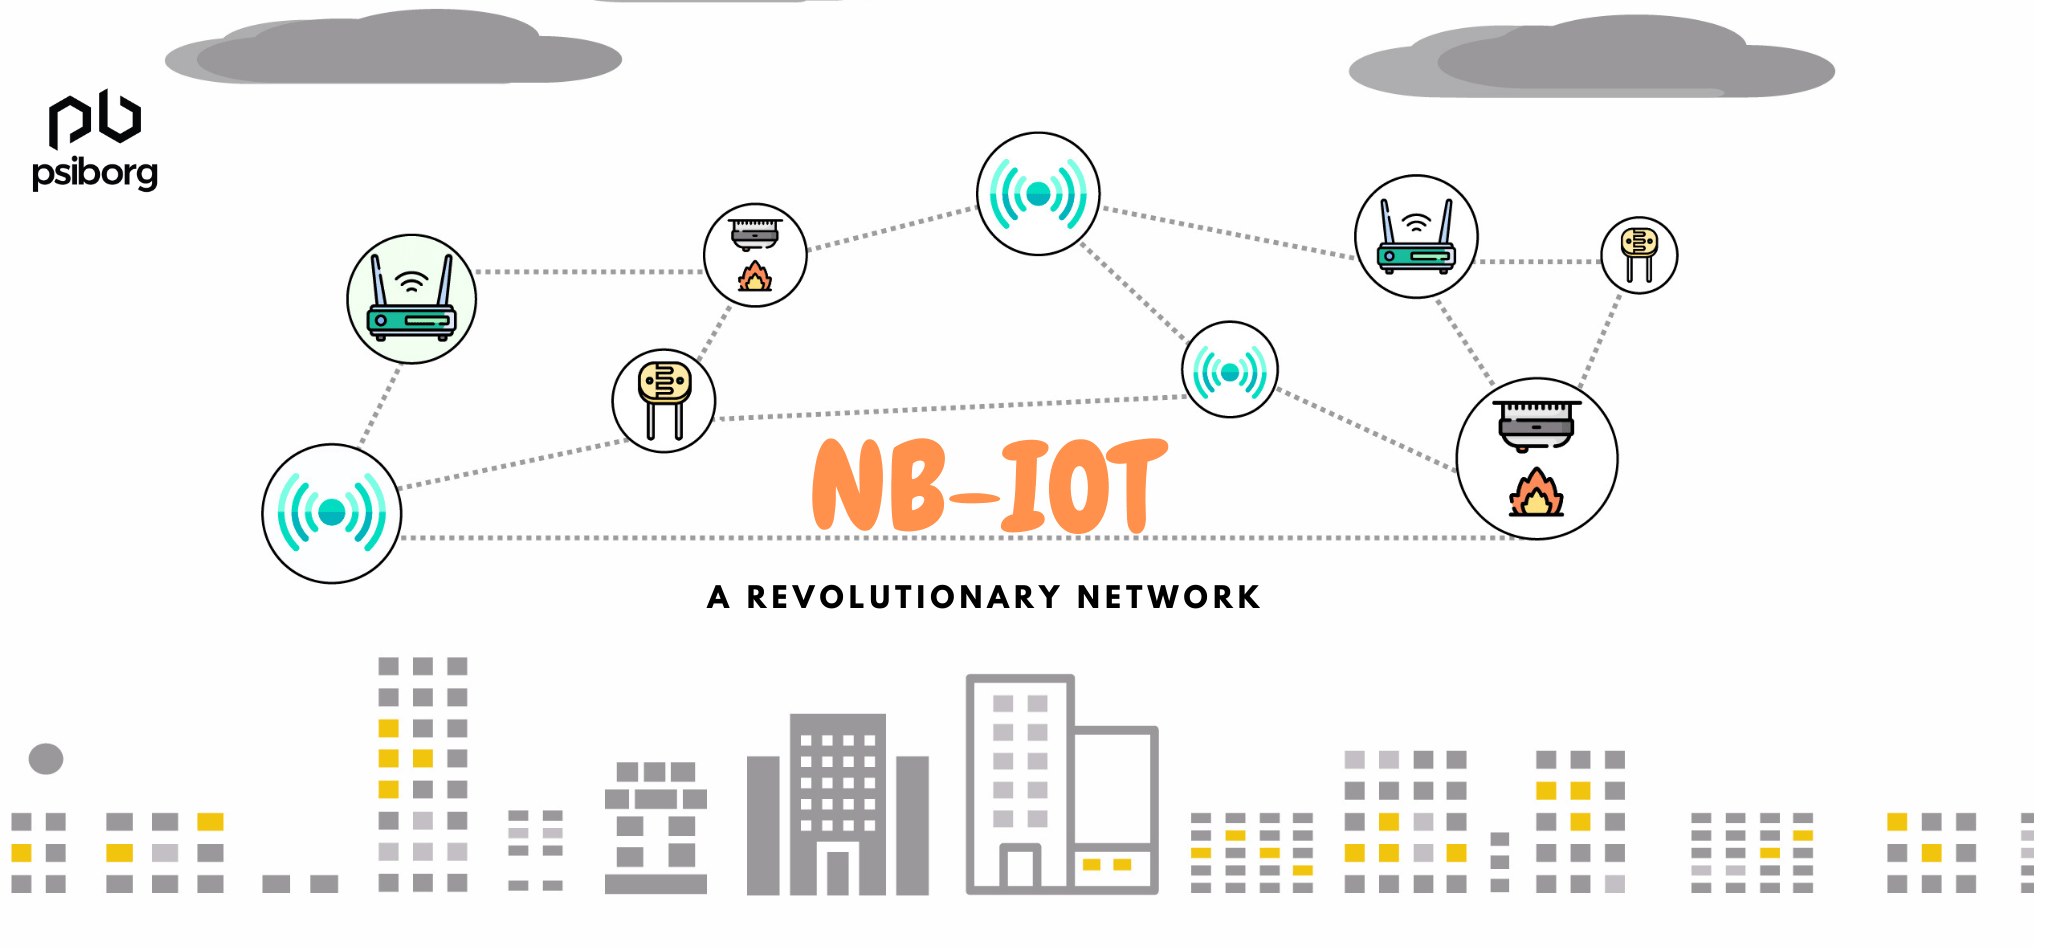 NBIoT for connecting iot devices